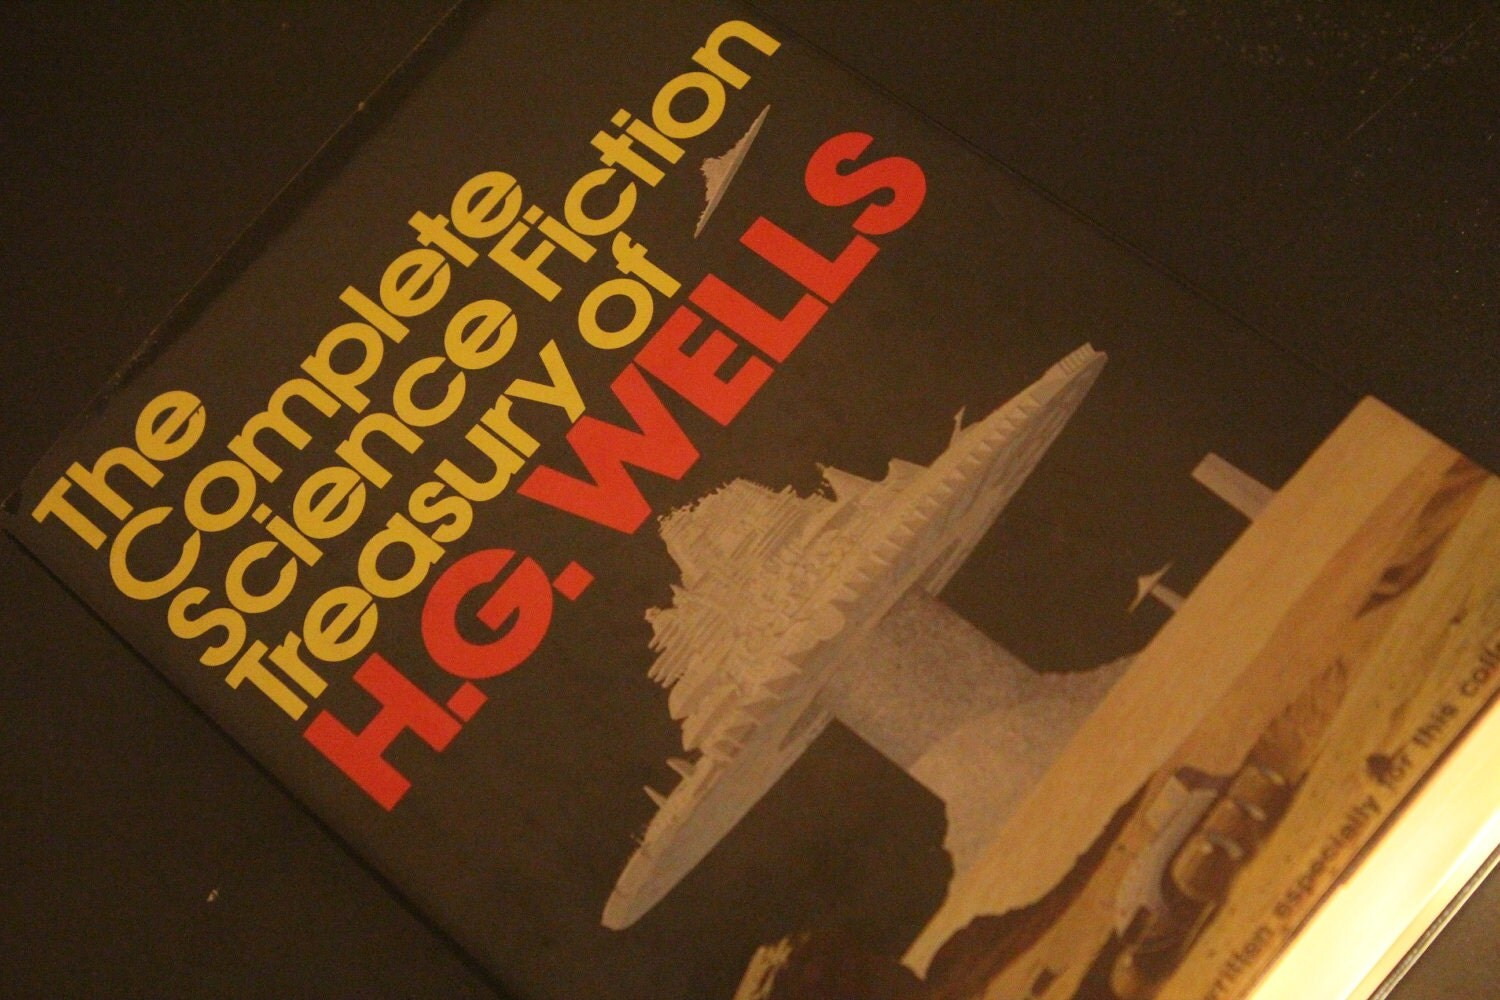 The Complete Science Fiction Treasury of H.G. Wells (HARDCOVER 1978)